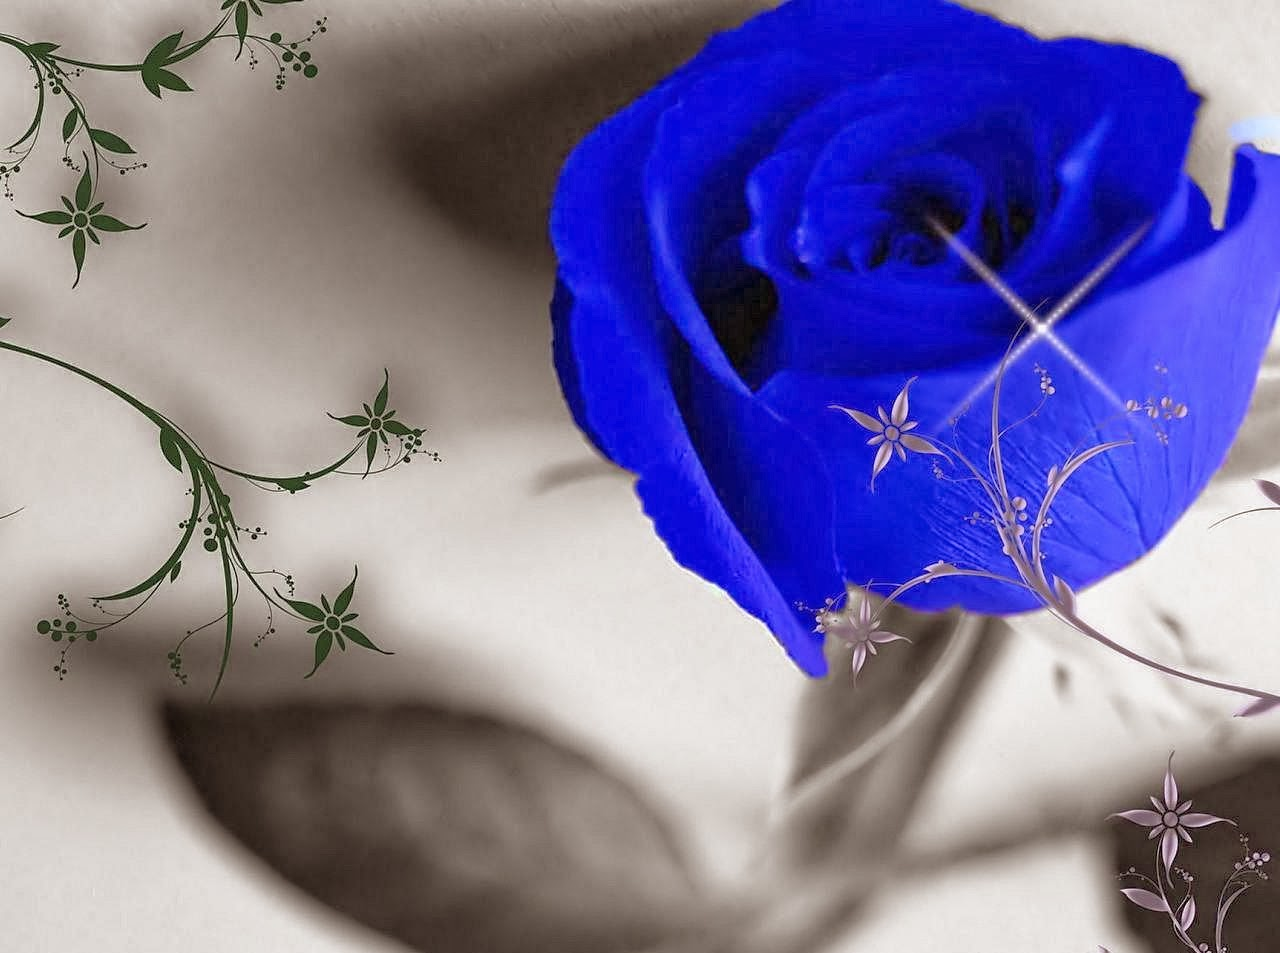 Blue And White Rose Wallpaper Blue Rose Wallpaper Background